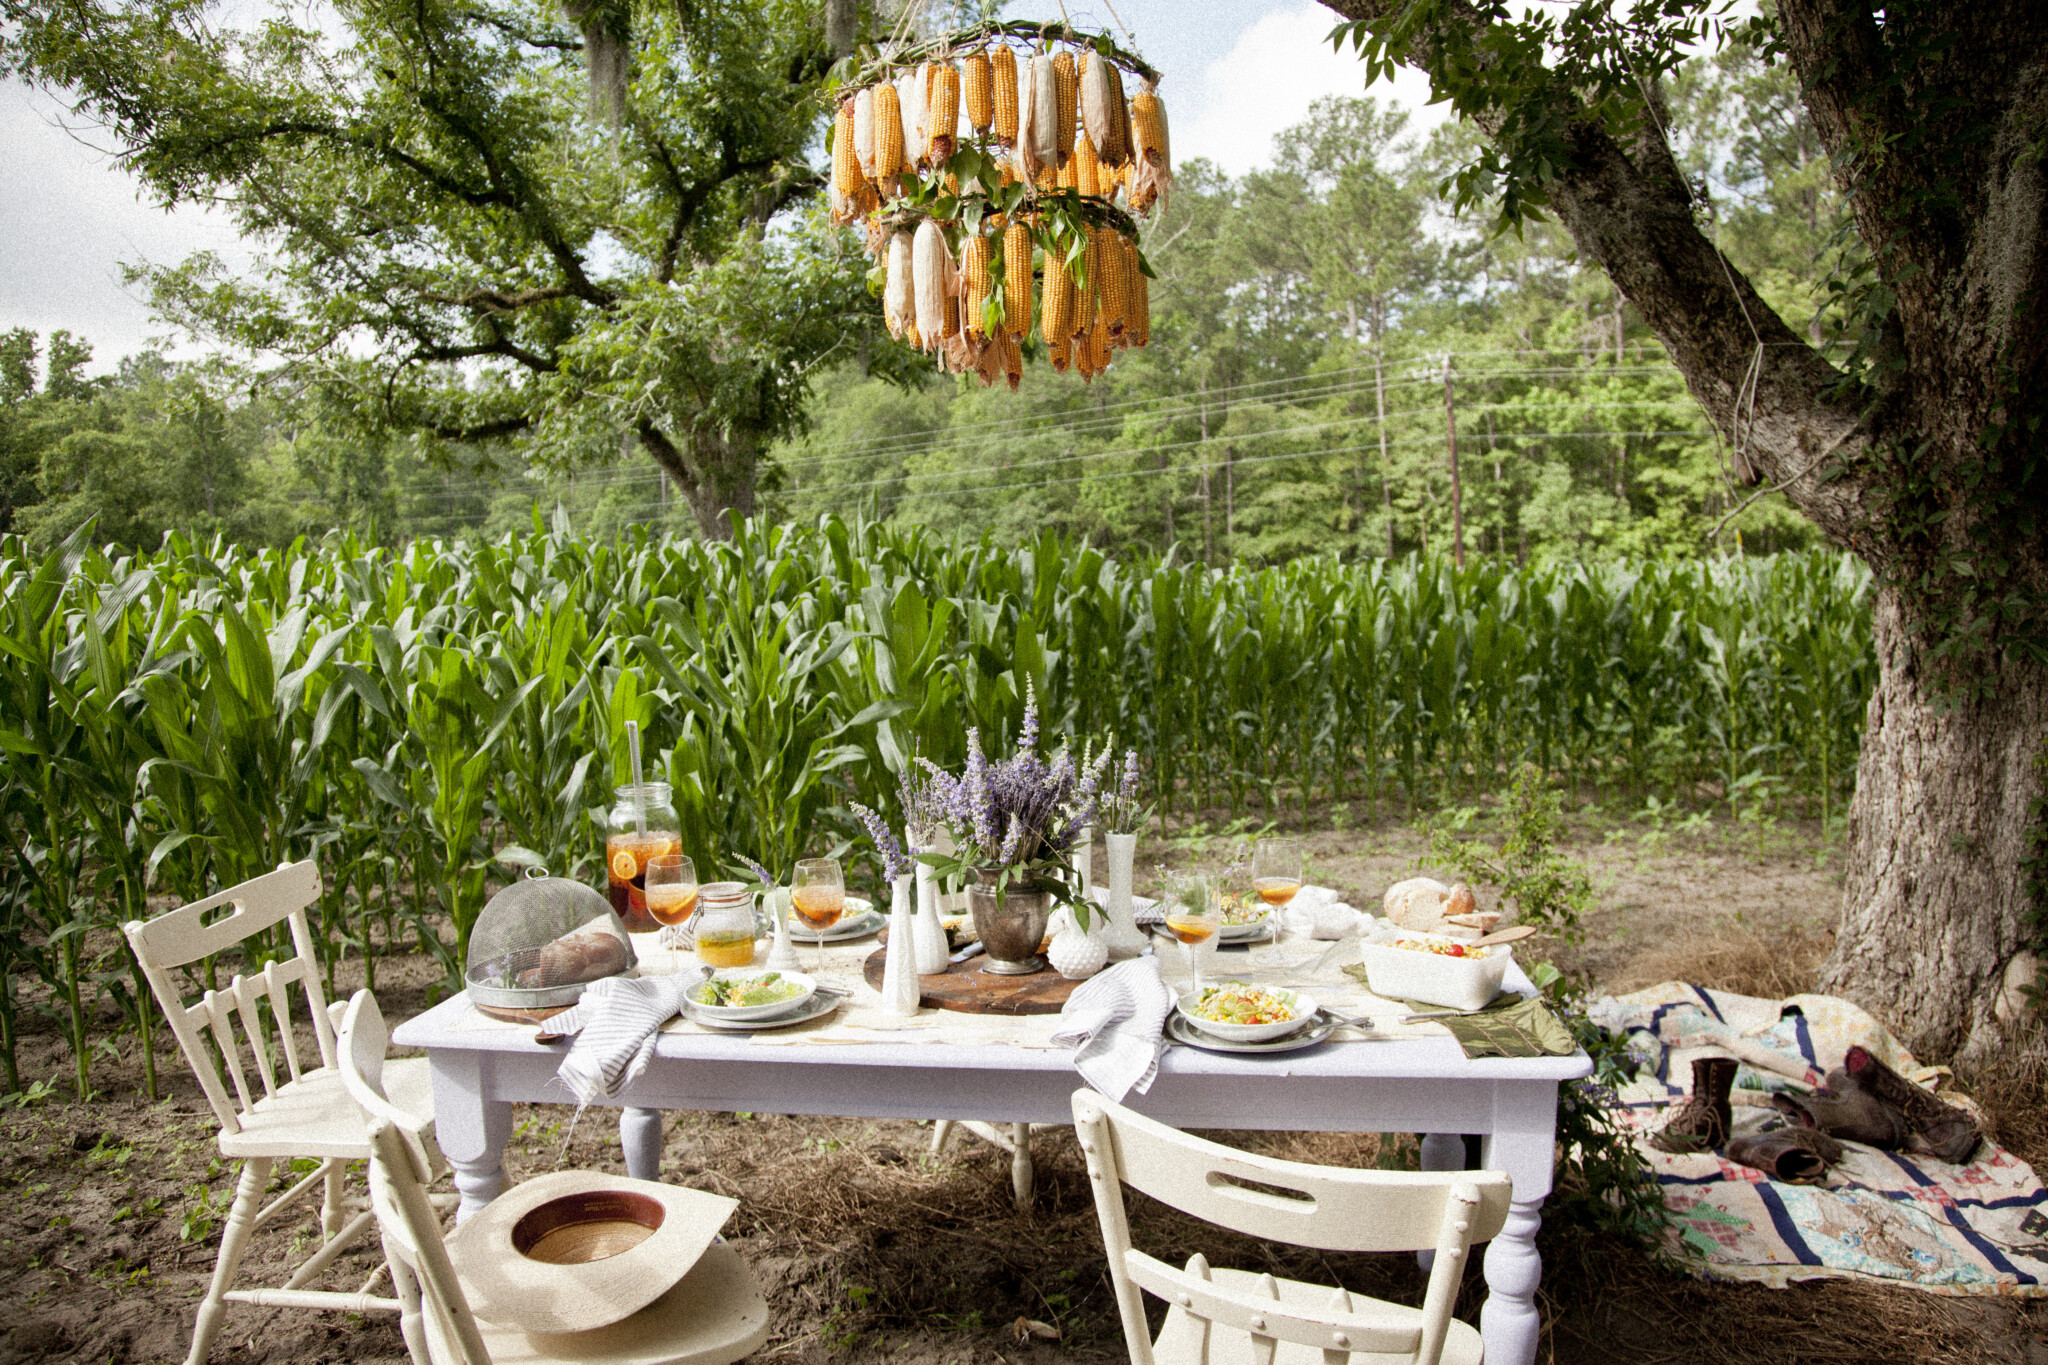 Dining Al Fresco, Lunch in a Cornfield, Libbie Summers Entertains, Corn Chandelier,